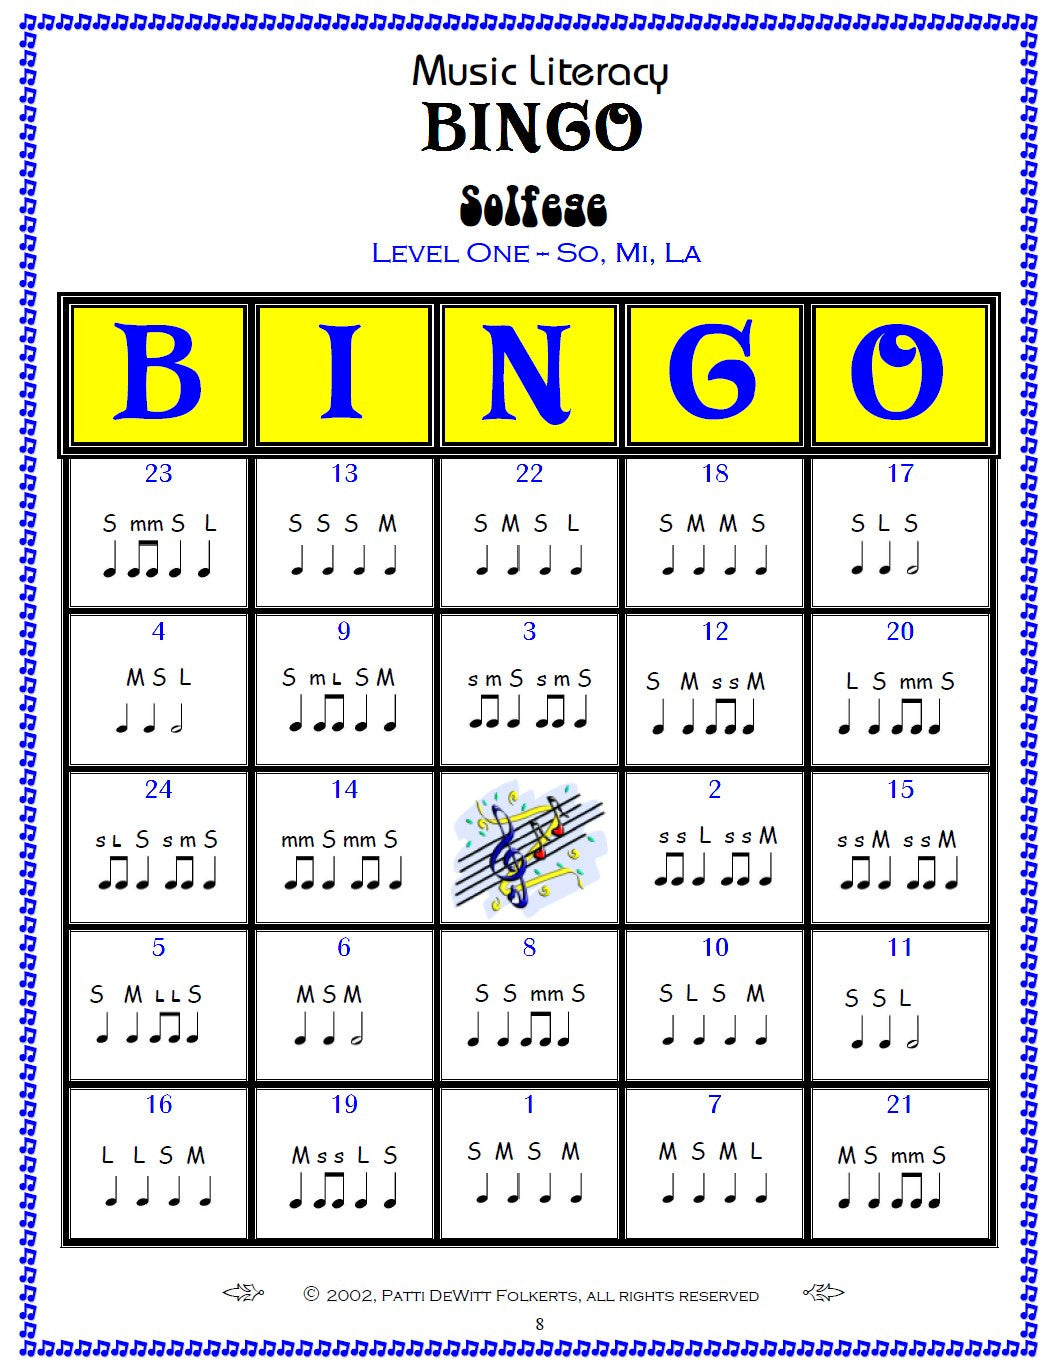 Solfege Music Literacy Bingo Level 1